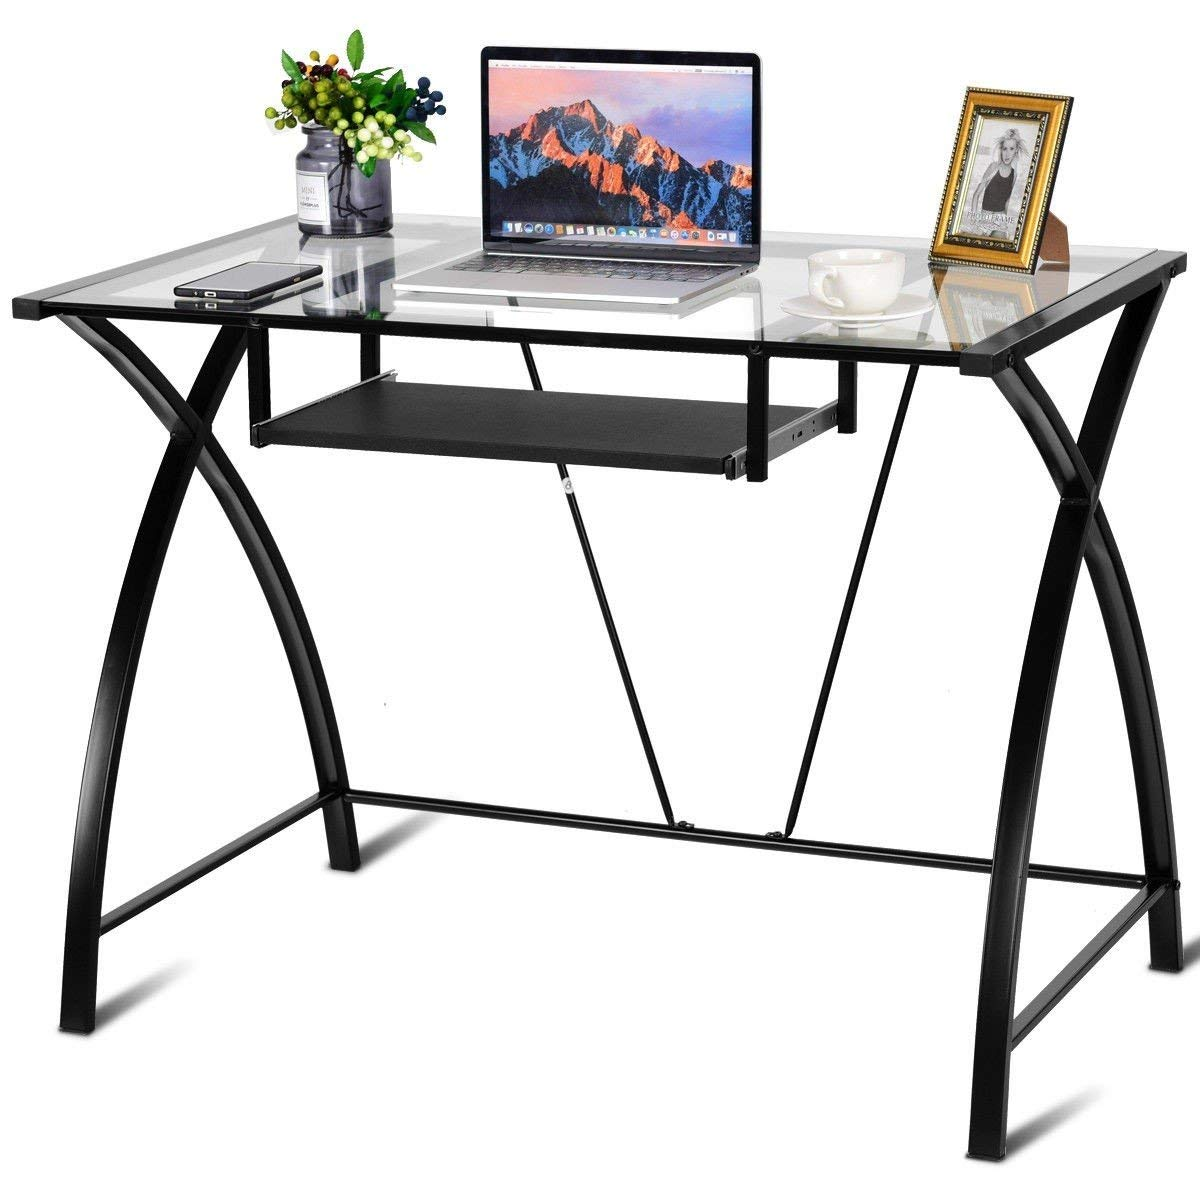 Clear Glass Top Computer Desk with Pull-Out Keyboard Tray Home Office Furniture BeUniqueToday